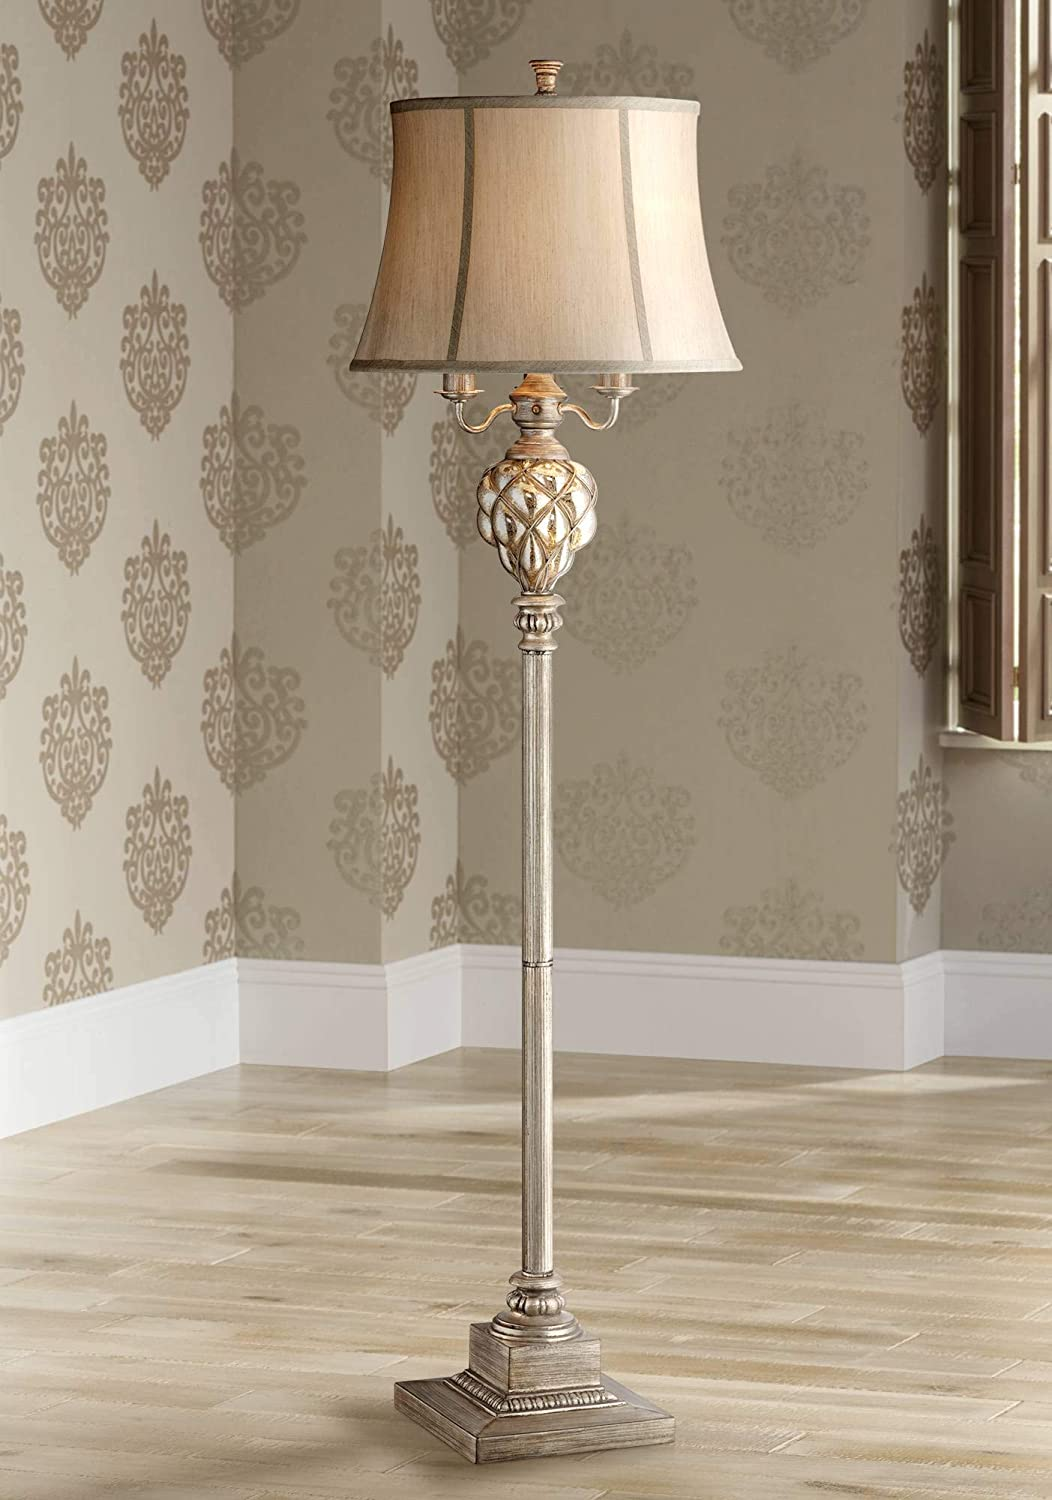 Olde Traditional Floor Lamp with Nightlight LED Olde Silver Mercury Glass Faux Silk Bell Shade for Living Room Reading – Barnes and Ivy